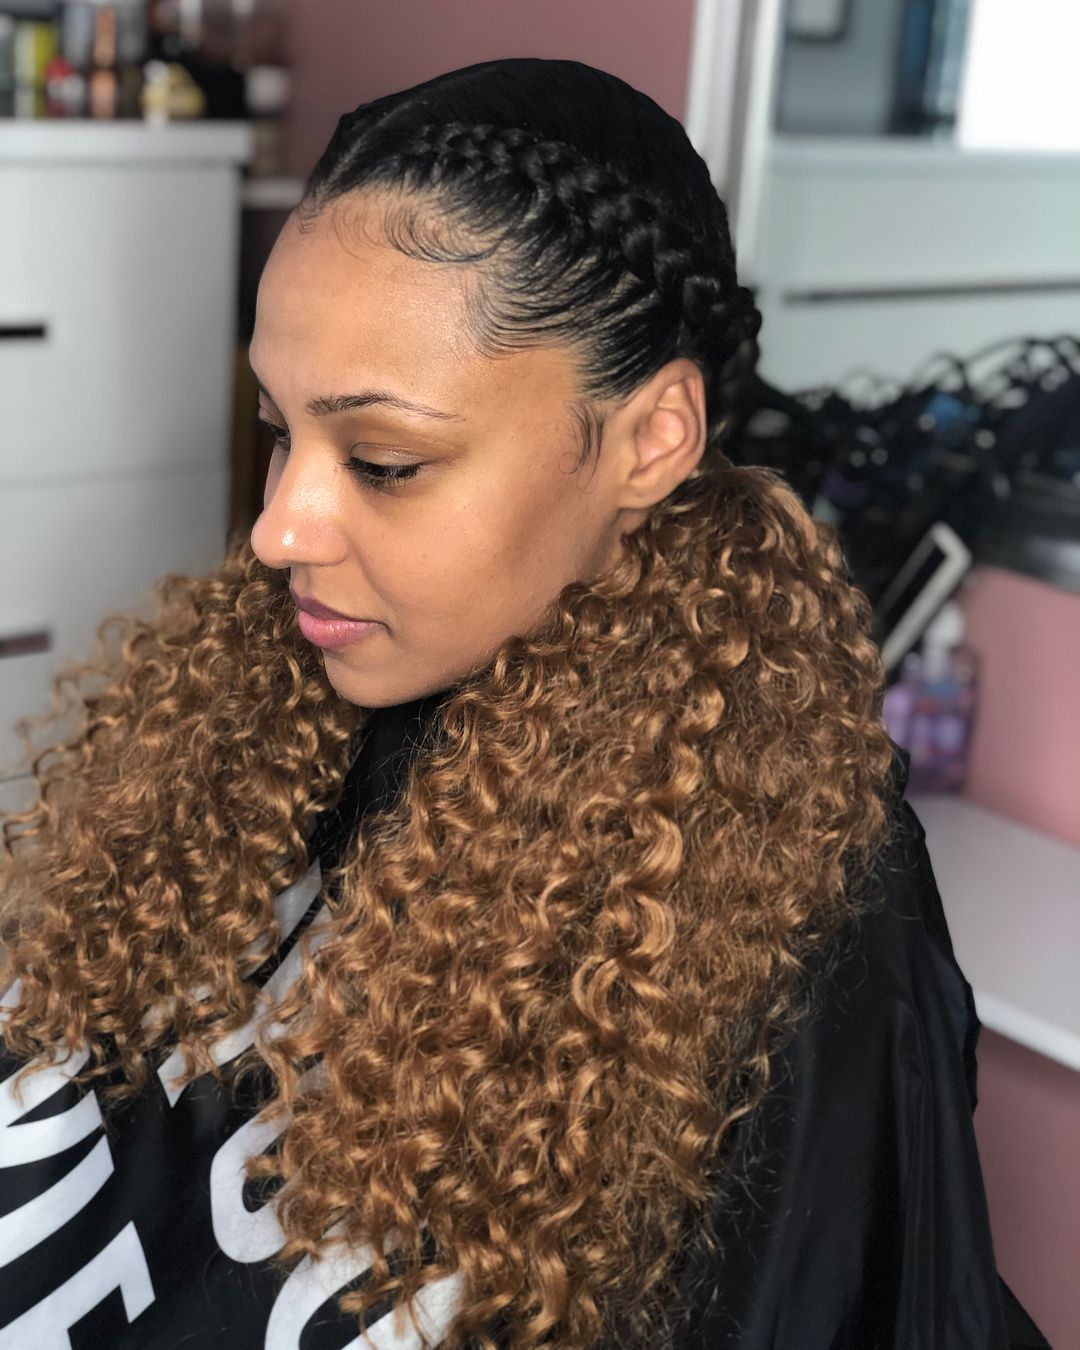 21 Ideas Hair Styles Cornrow Two Braids For 2019 Two Braid Hairstyles Hair Styles Natural Hair Styles